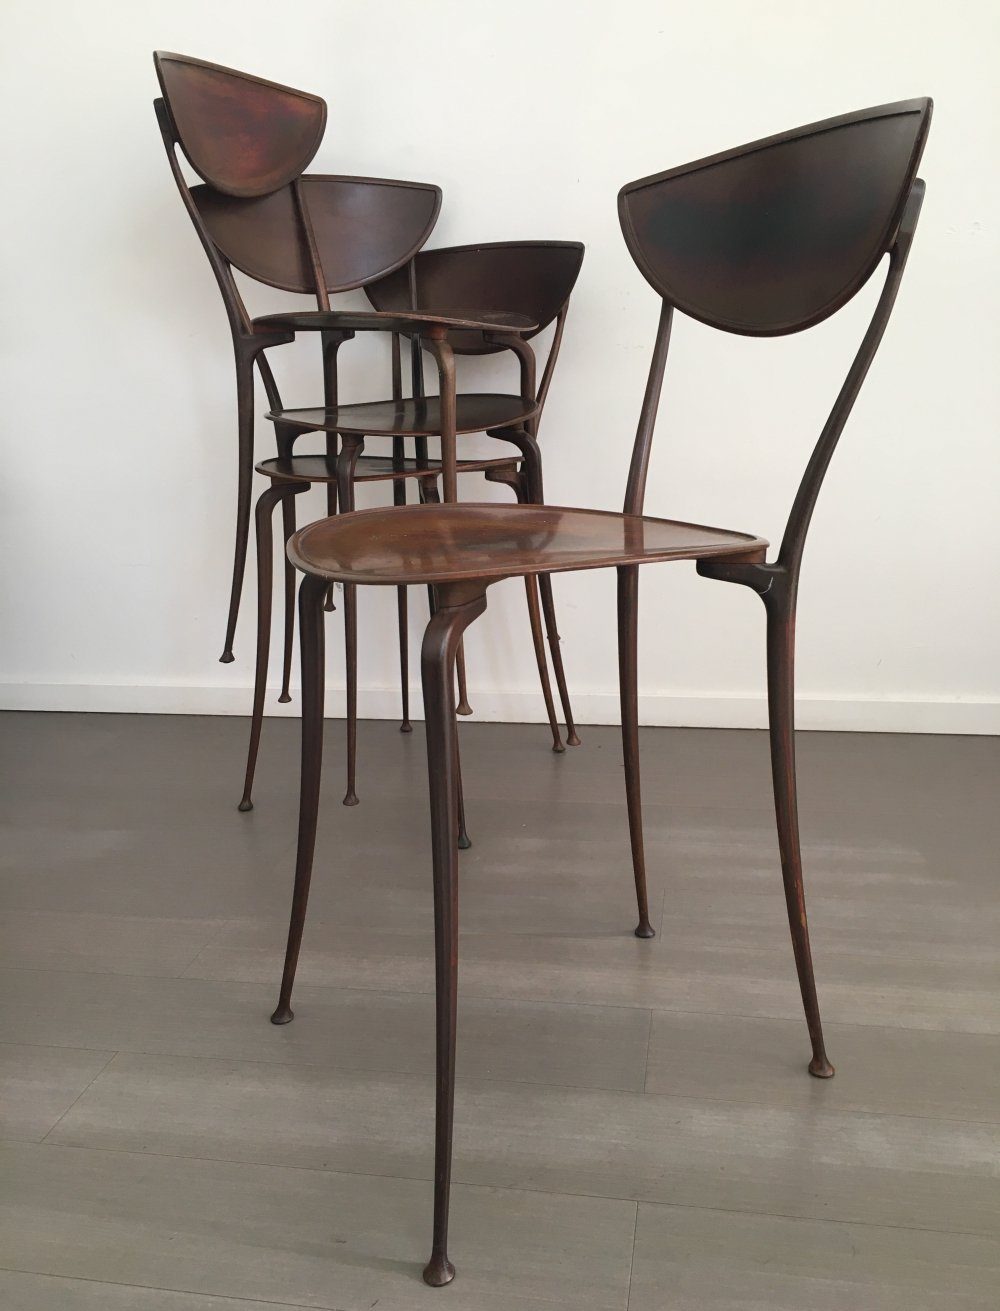 Set of 4 Arper dining chairs, 1980s